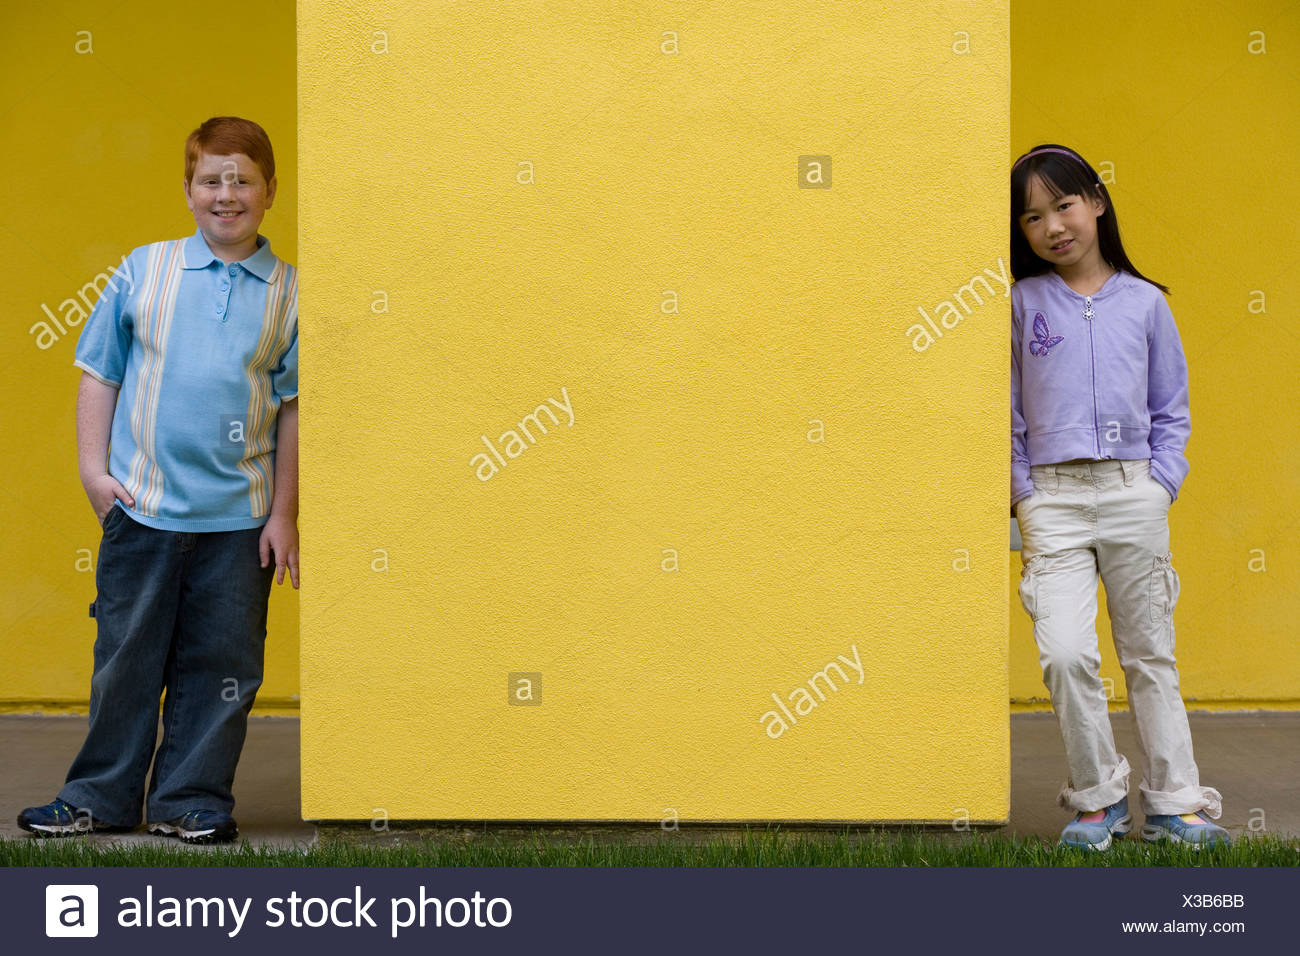 Boy 10 12 and girl 9 11 standing at opposite ends of yellow wall smiling front view portrait - Stock Image